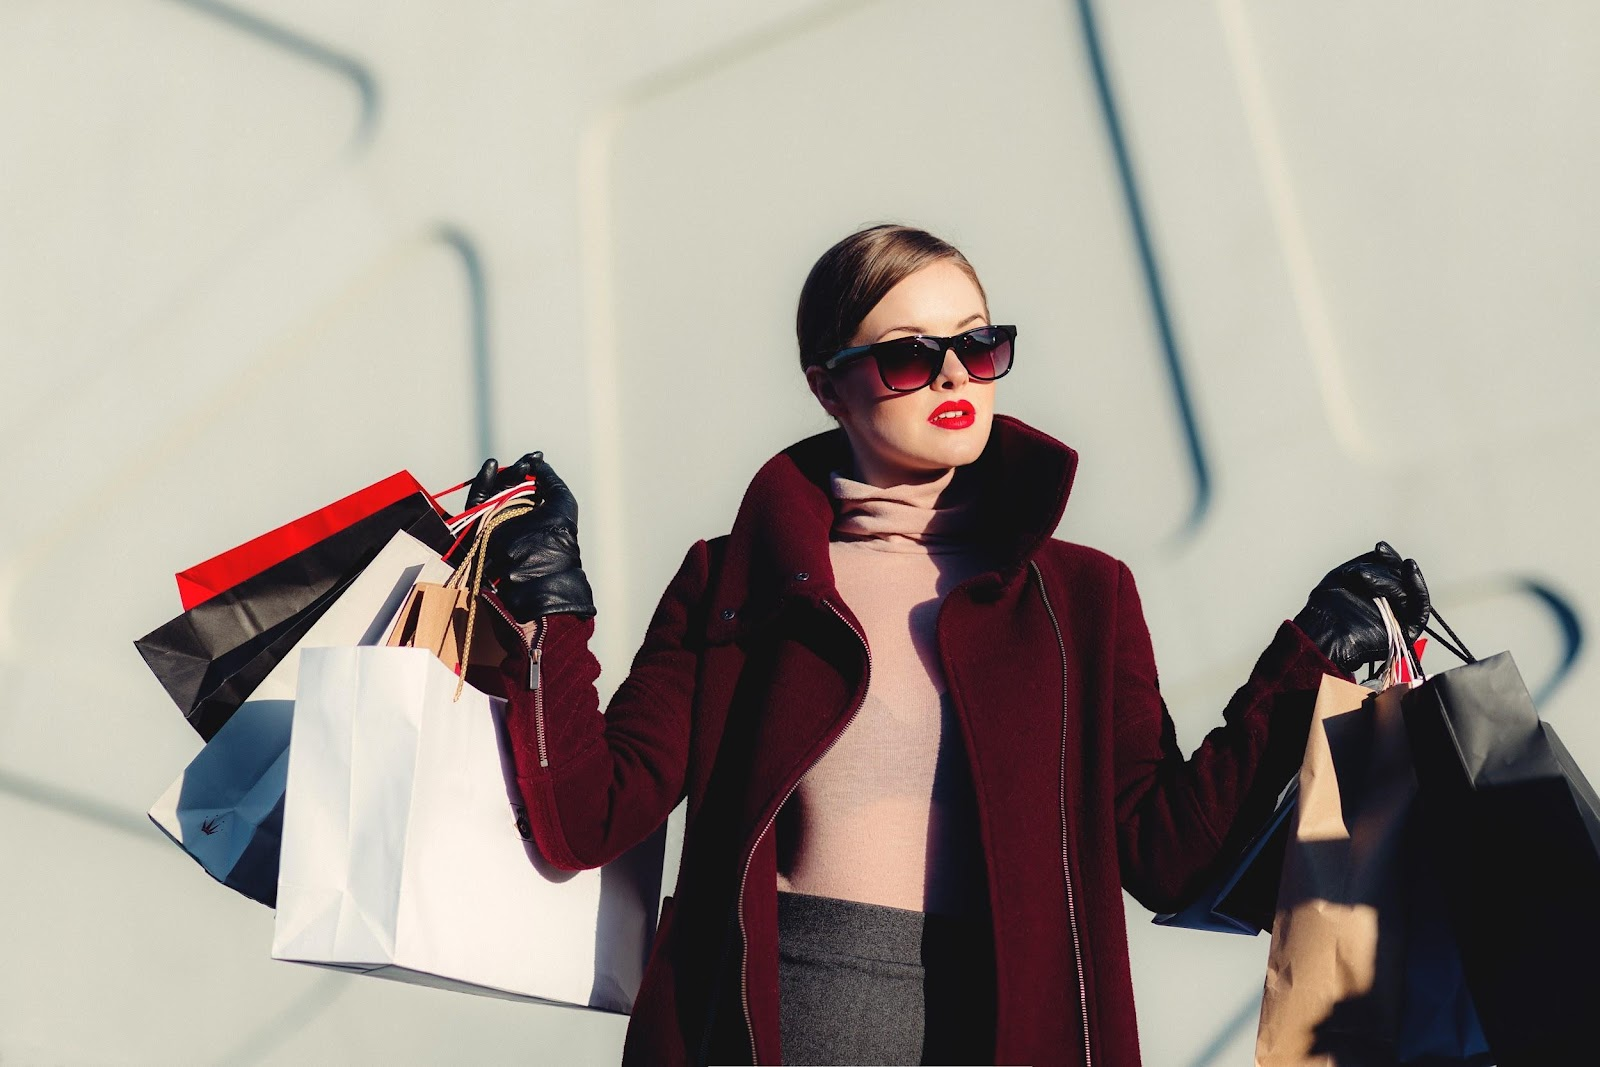 Woman carrying bags of fashion designer clothing.